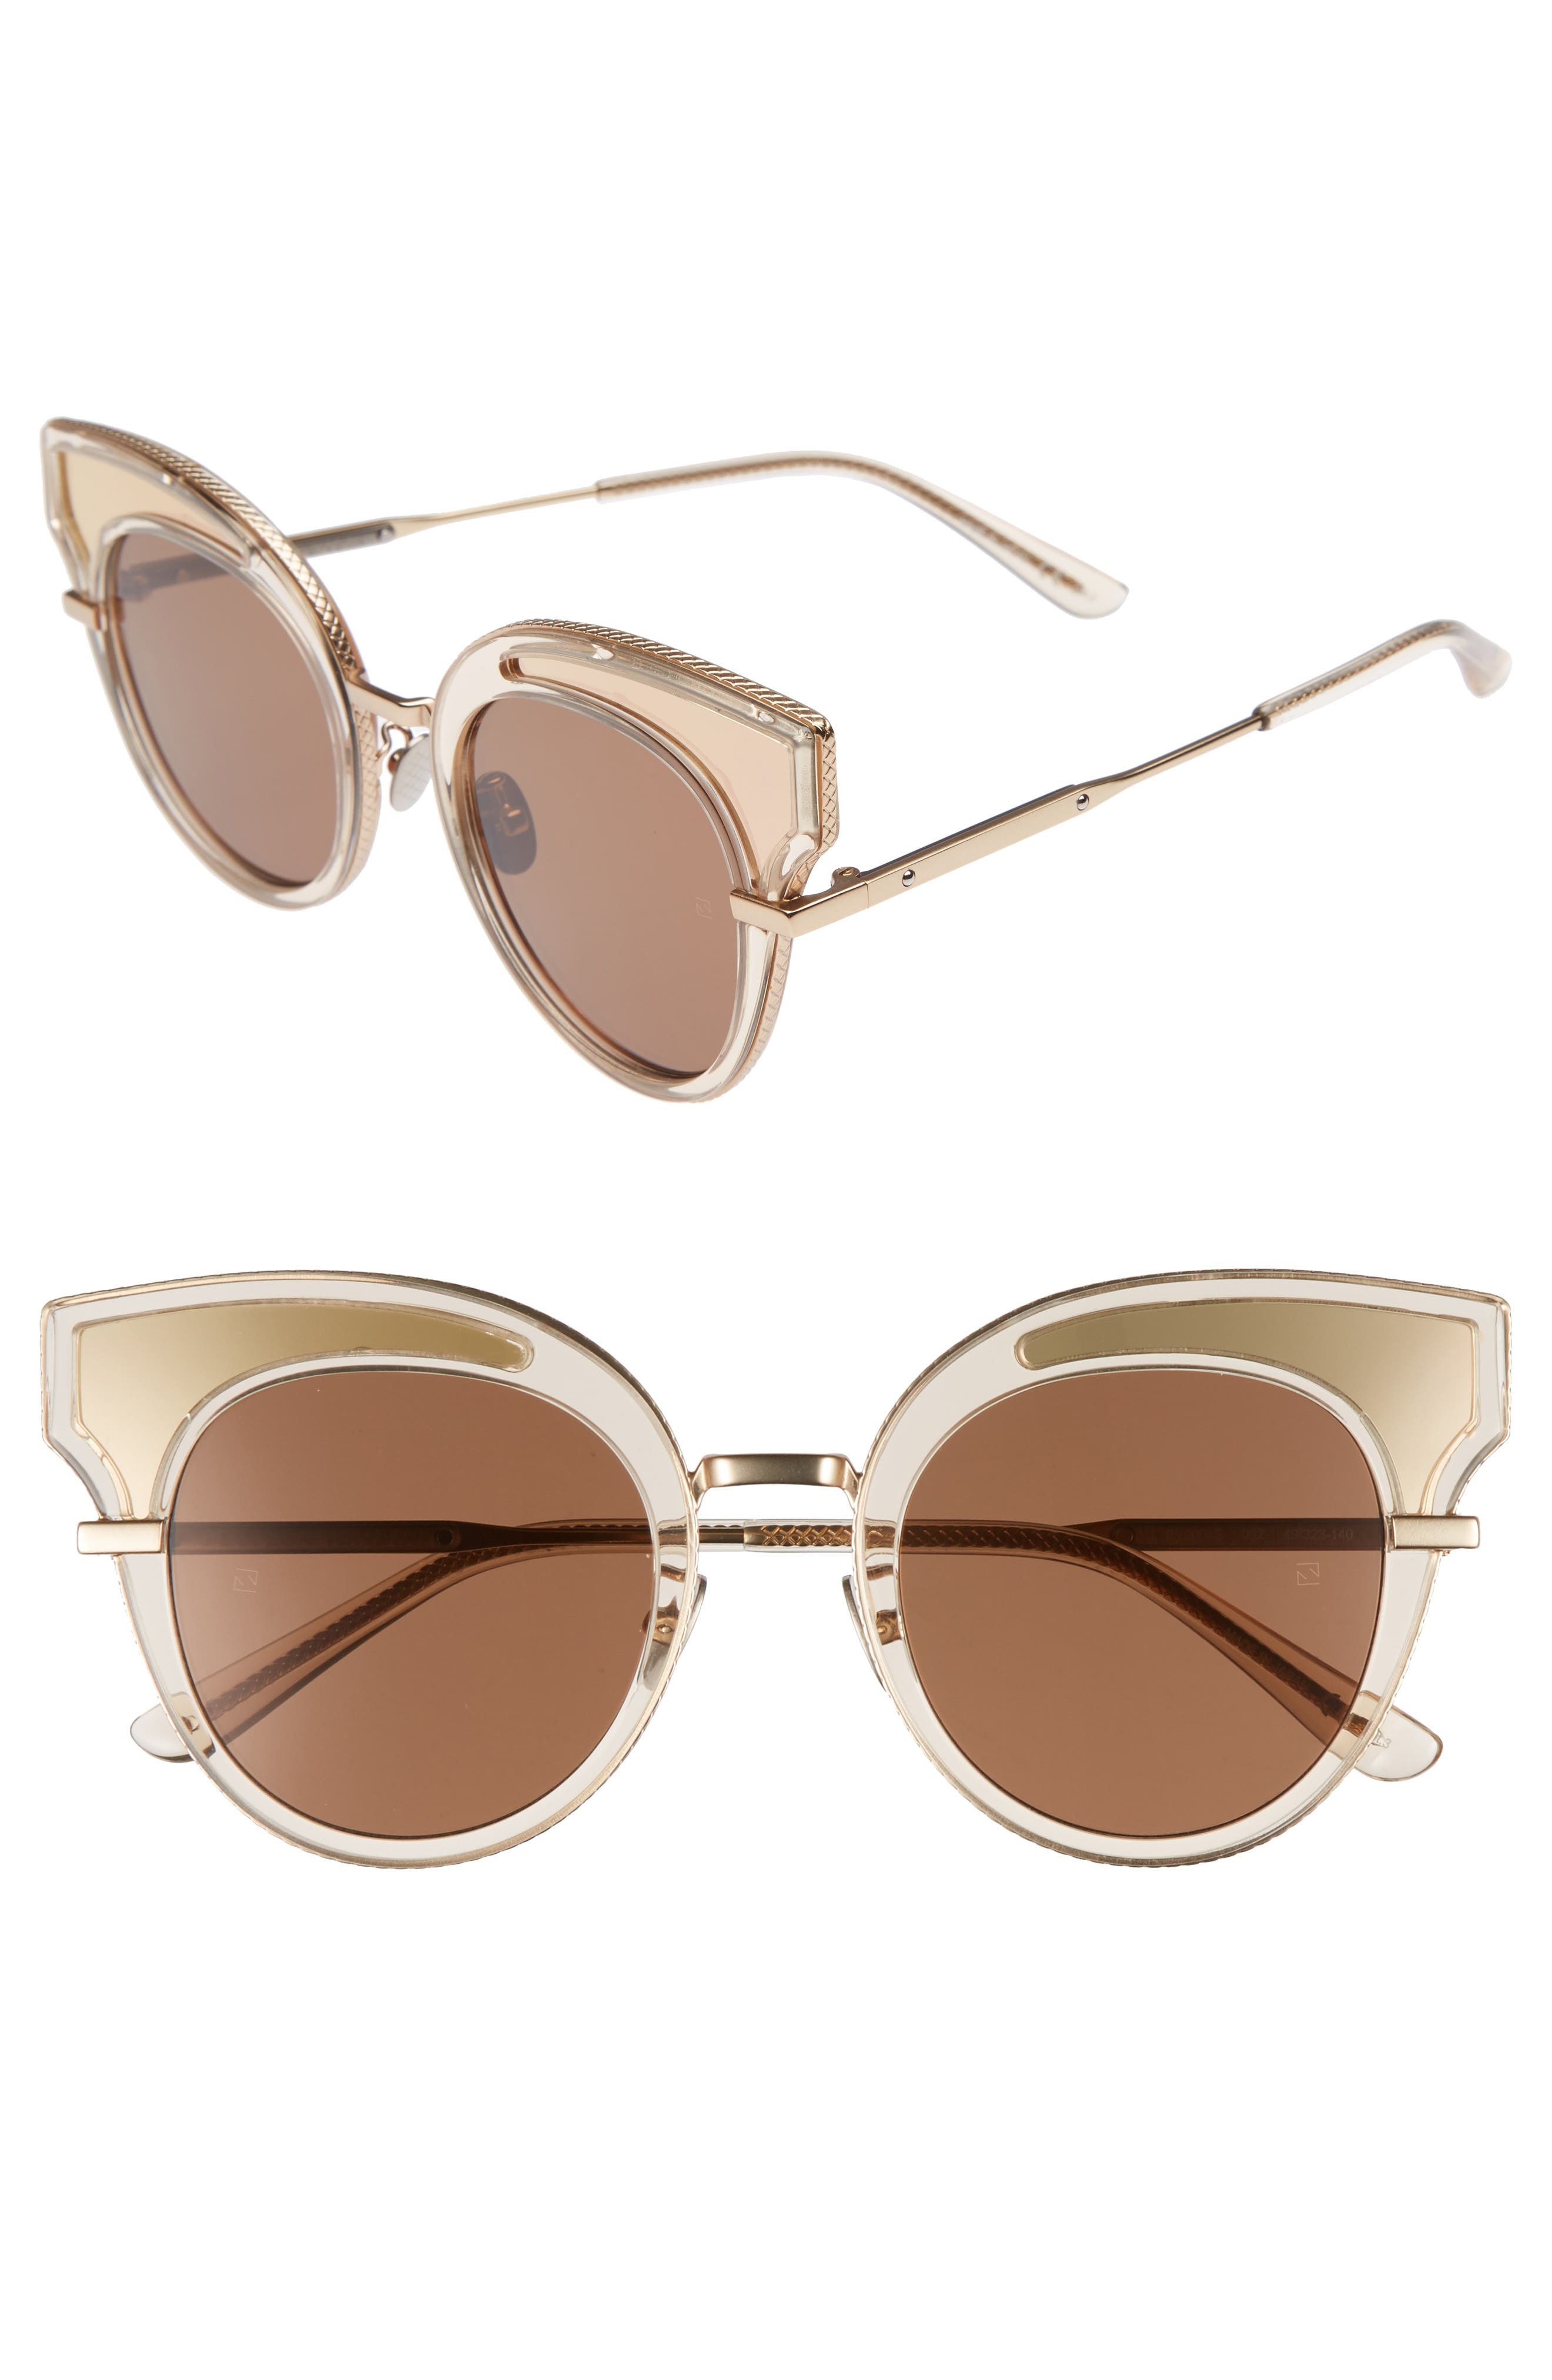 Main Image - Bottega Veneta 49mm Cat Eye Sunglasses